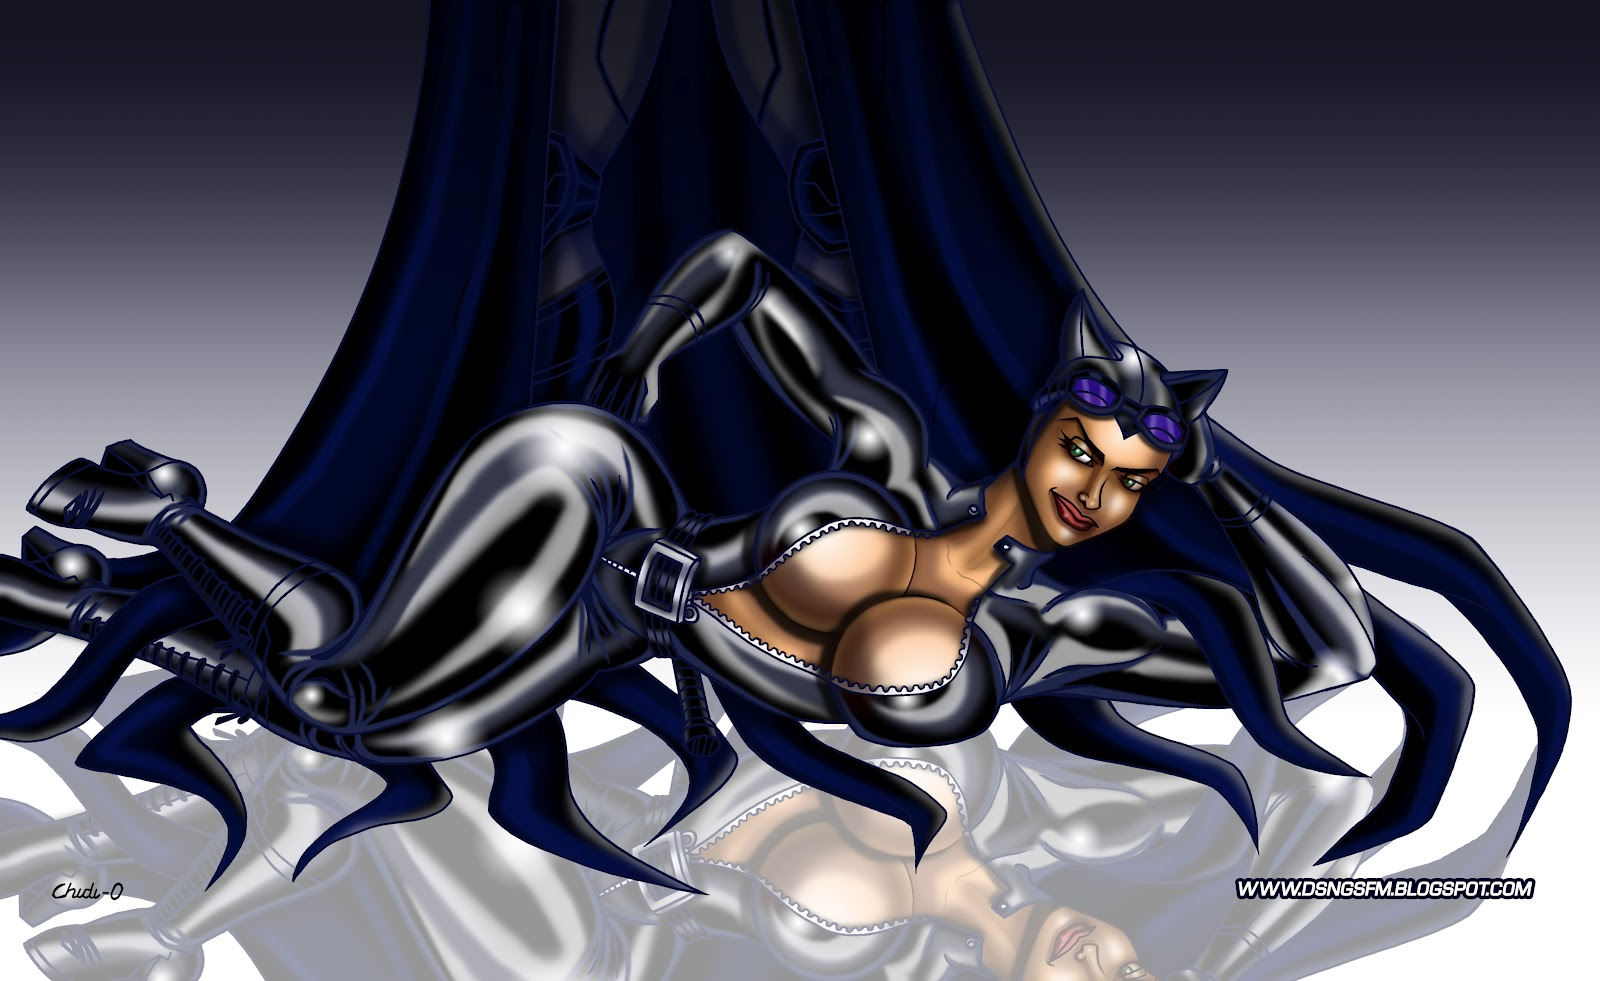 http://3.bp.blogspot.com/-tDVpirN3OP0/T8ATjiPGhxI/AAAAAAAAFxc/RGOZ4XrOWrg/s1600/Batman+and+Catwoman+sexy+big+huge+hips+thighs+boobs+breasts+tits+latex+costume+cosplay+dsng+wallpaper+dc+comics+new+52+drawing+kiss+love+3.jpg